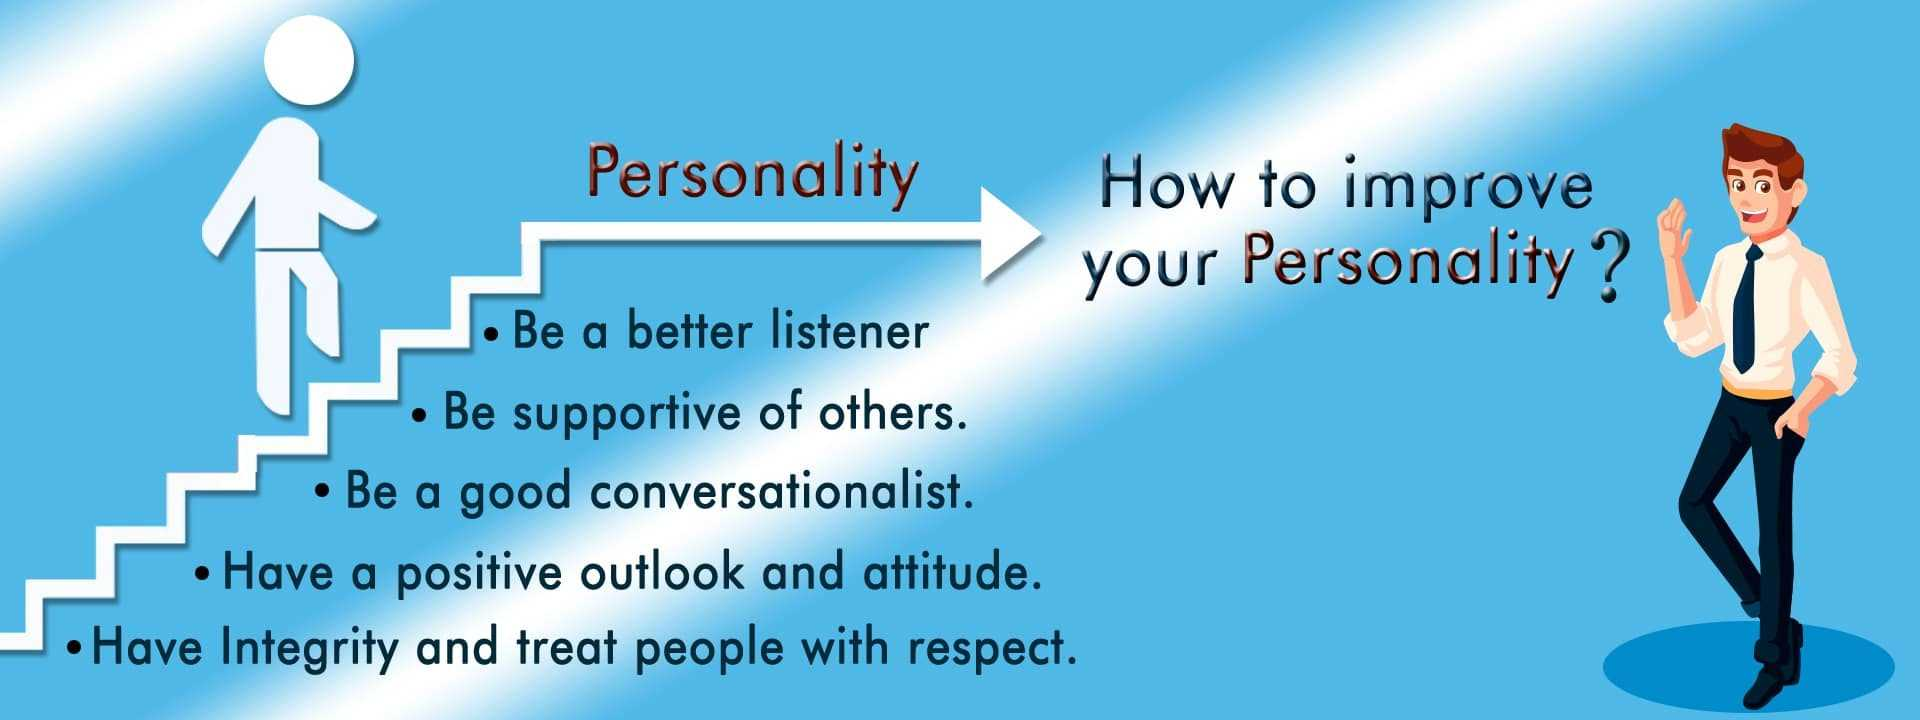 how-to-improve-your-personality